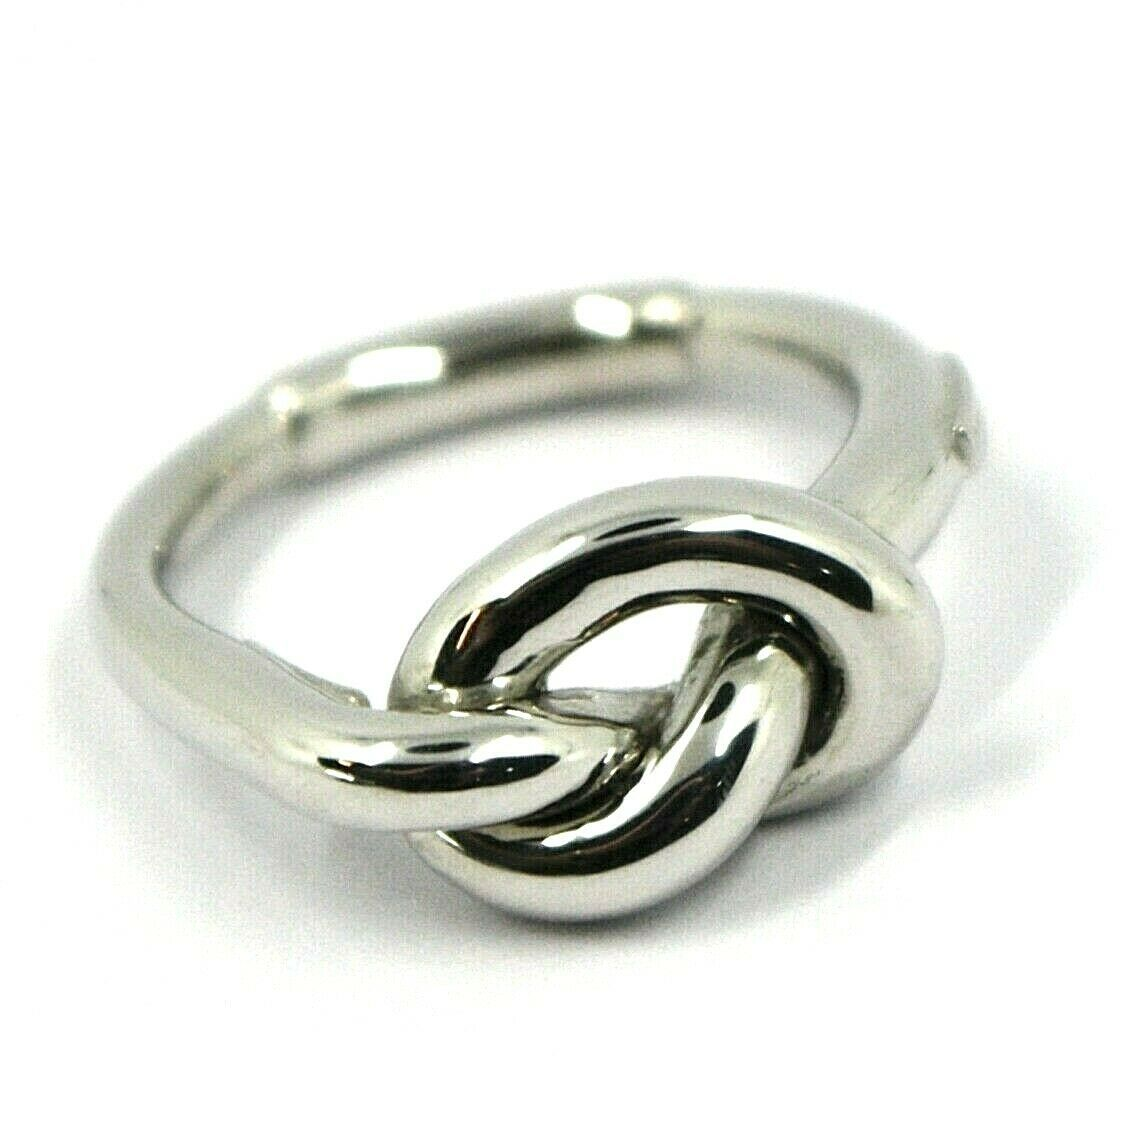 18K WHITE GOLD INFINITE CENTRAL RING, INFINITY, BRAIDED, KNOT, MADE IN ITALY